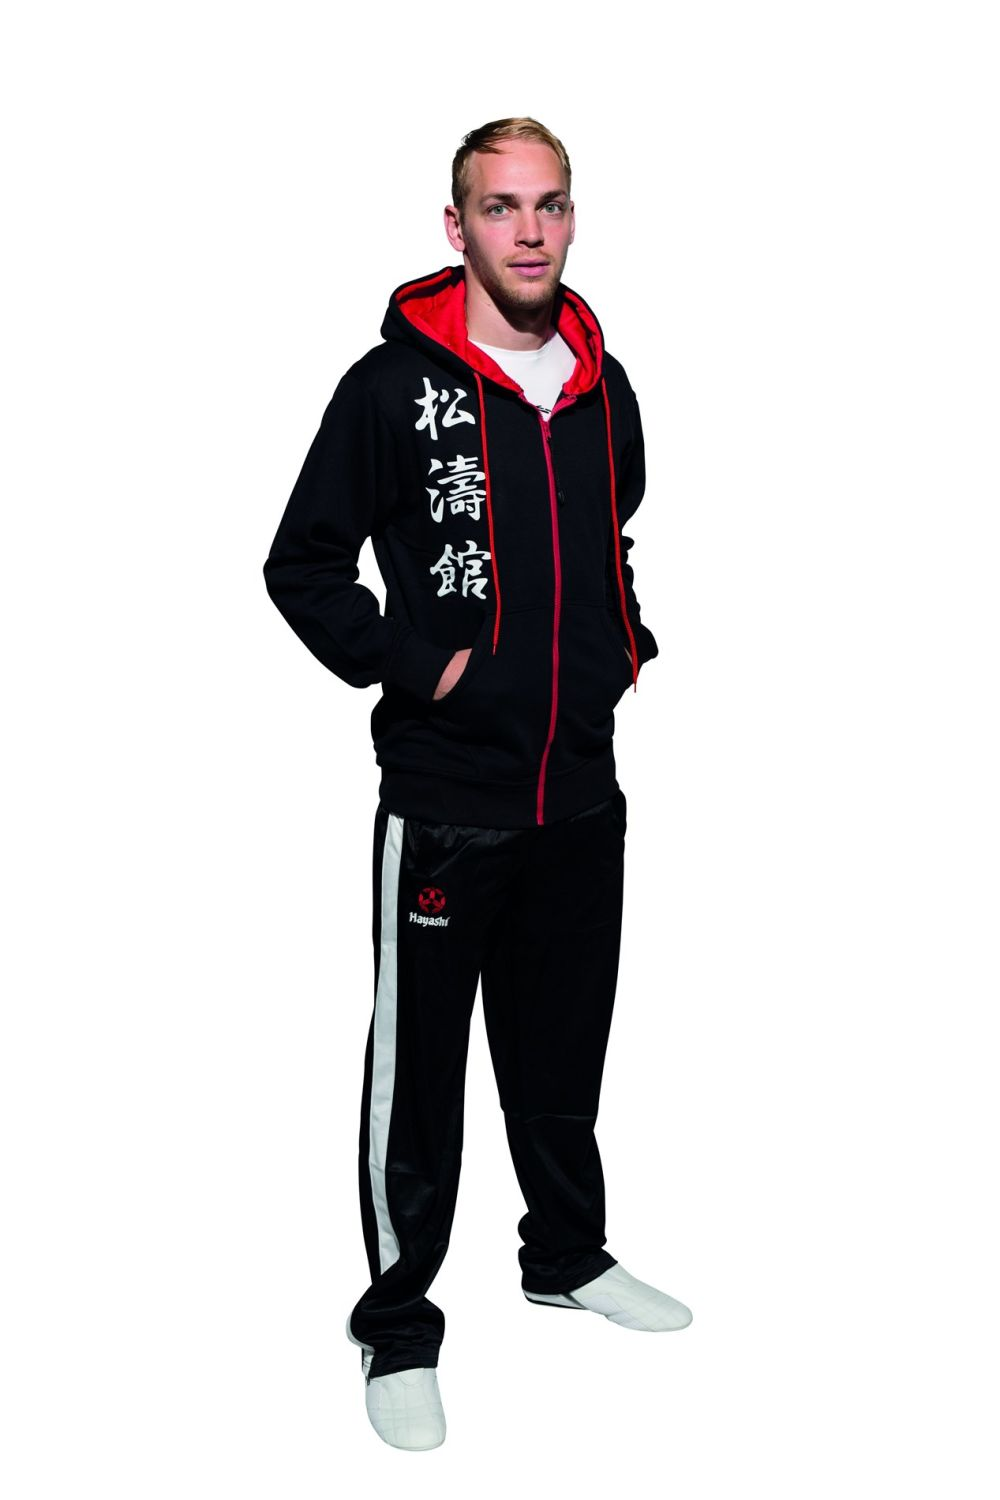 Hayashi Hooded Jacket Black Sweatsuit with Shotokan Karate KANJI